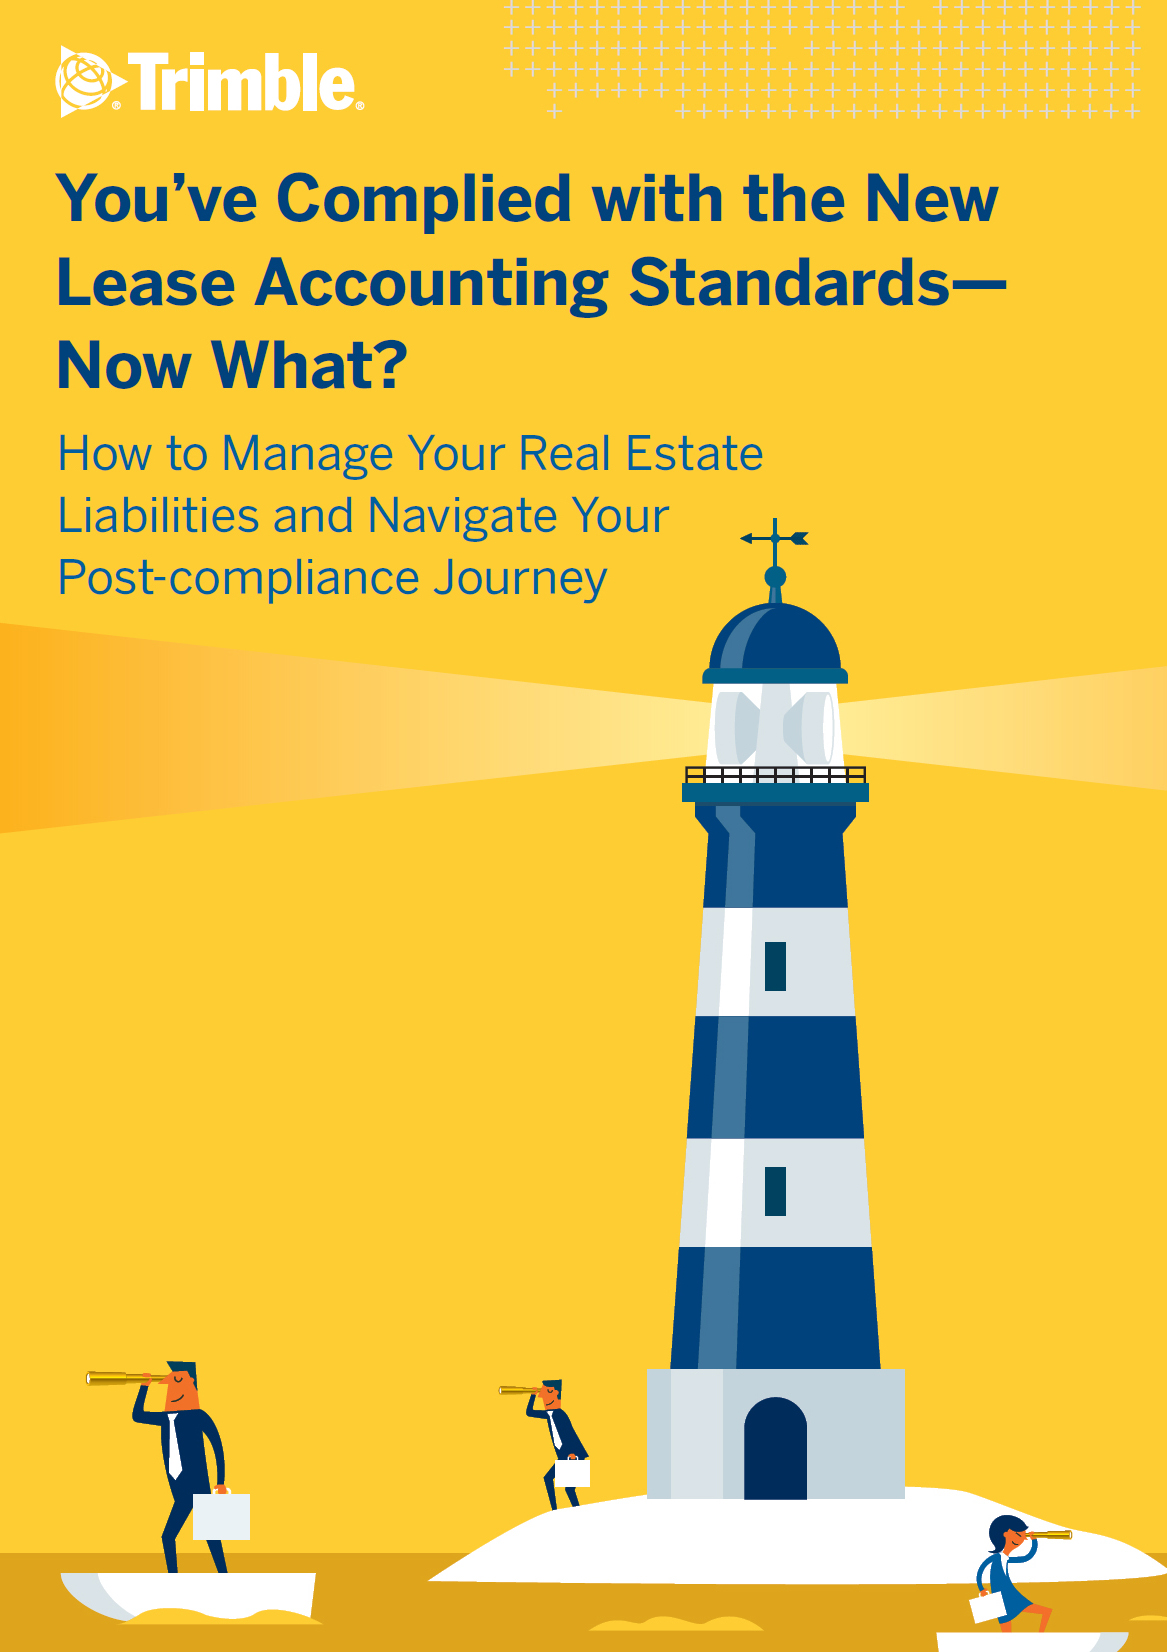 You've Complied with the New Lease Accounting Standards – Now What?